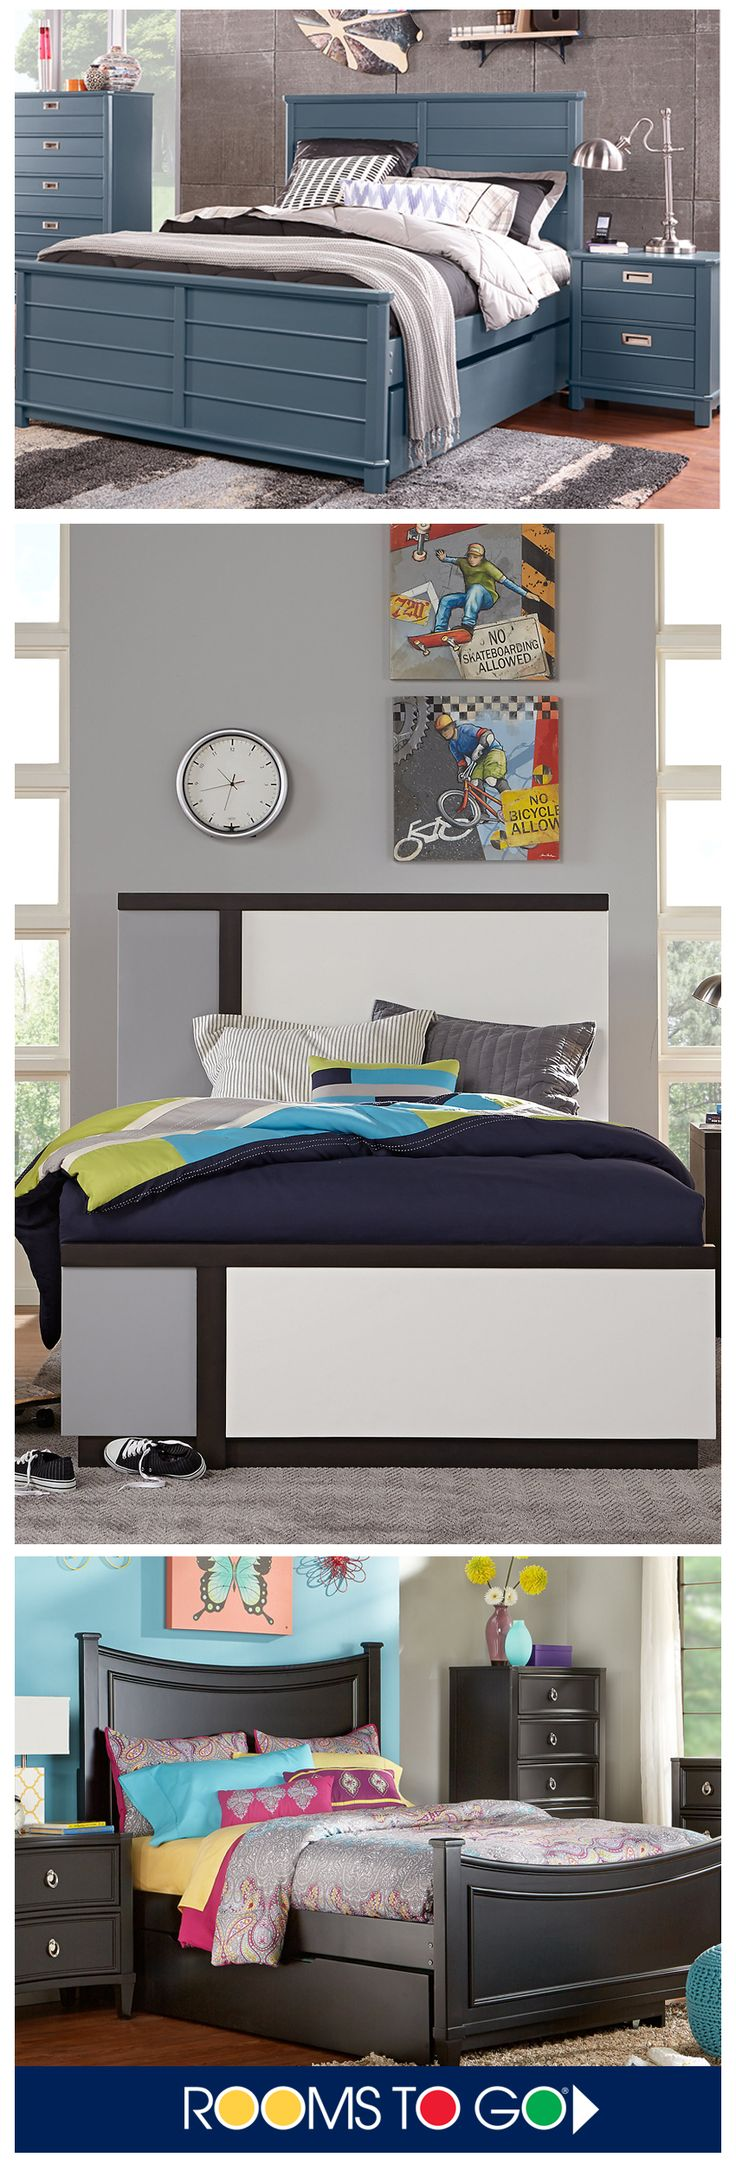 60 best jake s room images on pinterest bedroom ideas boy room